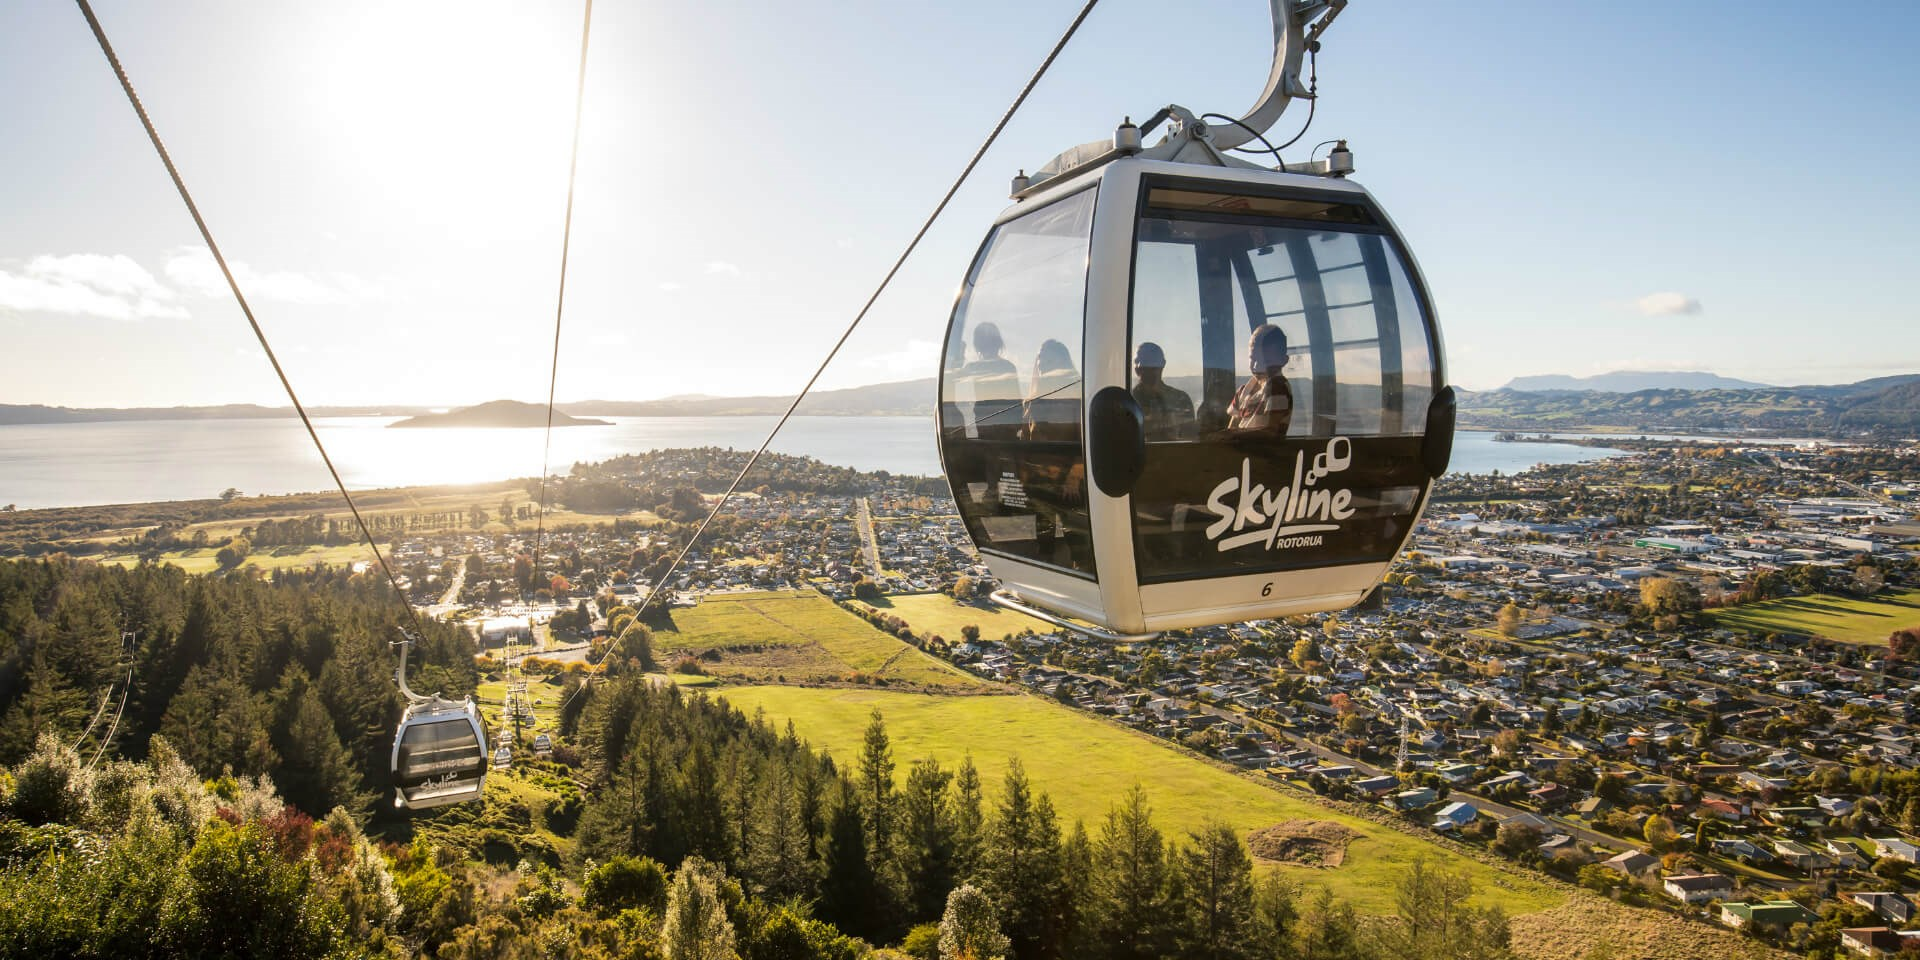 Gondola Cabin Ascends Mt Ngongotaha To The Skyline Rotorua Complex.